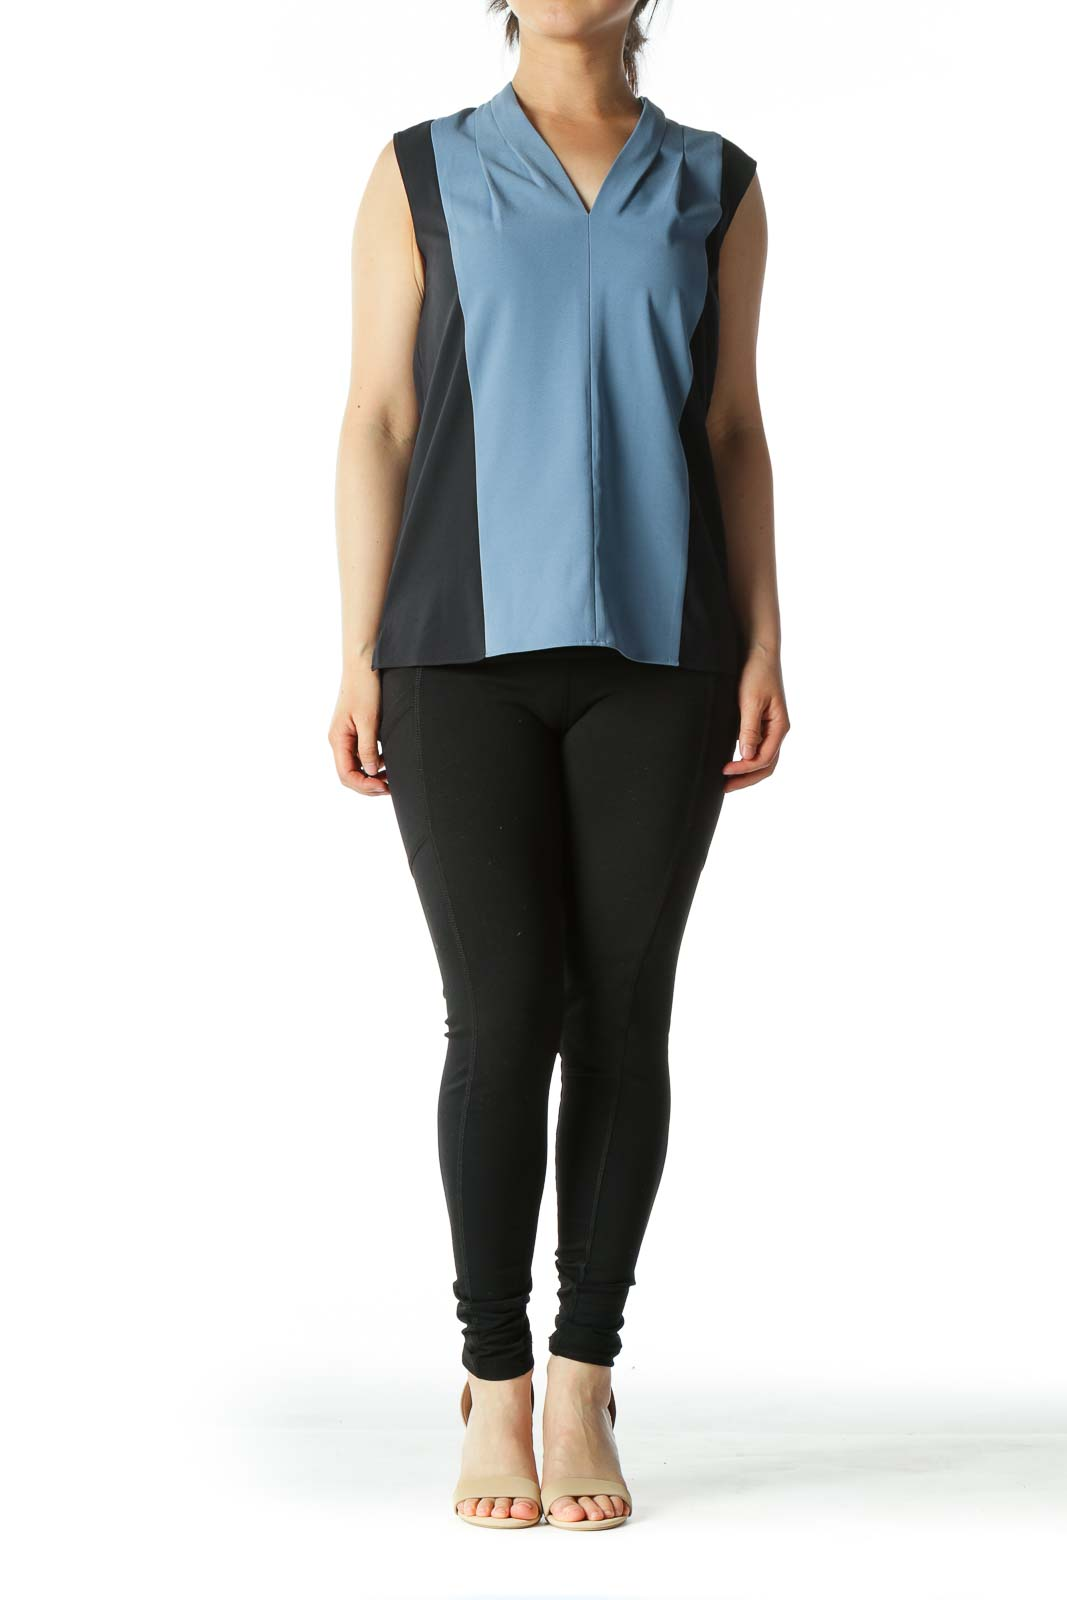 Light Blue and Navy Color-Block V-Neck Sleeveless Blouse